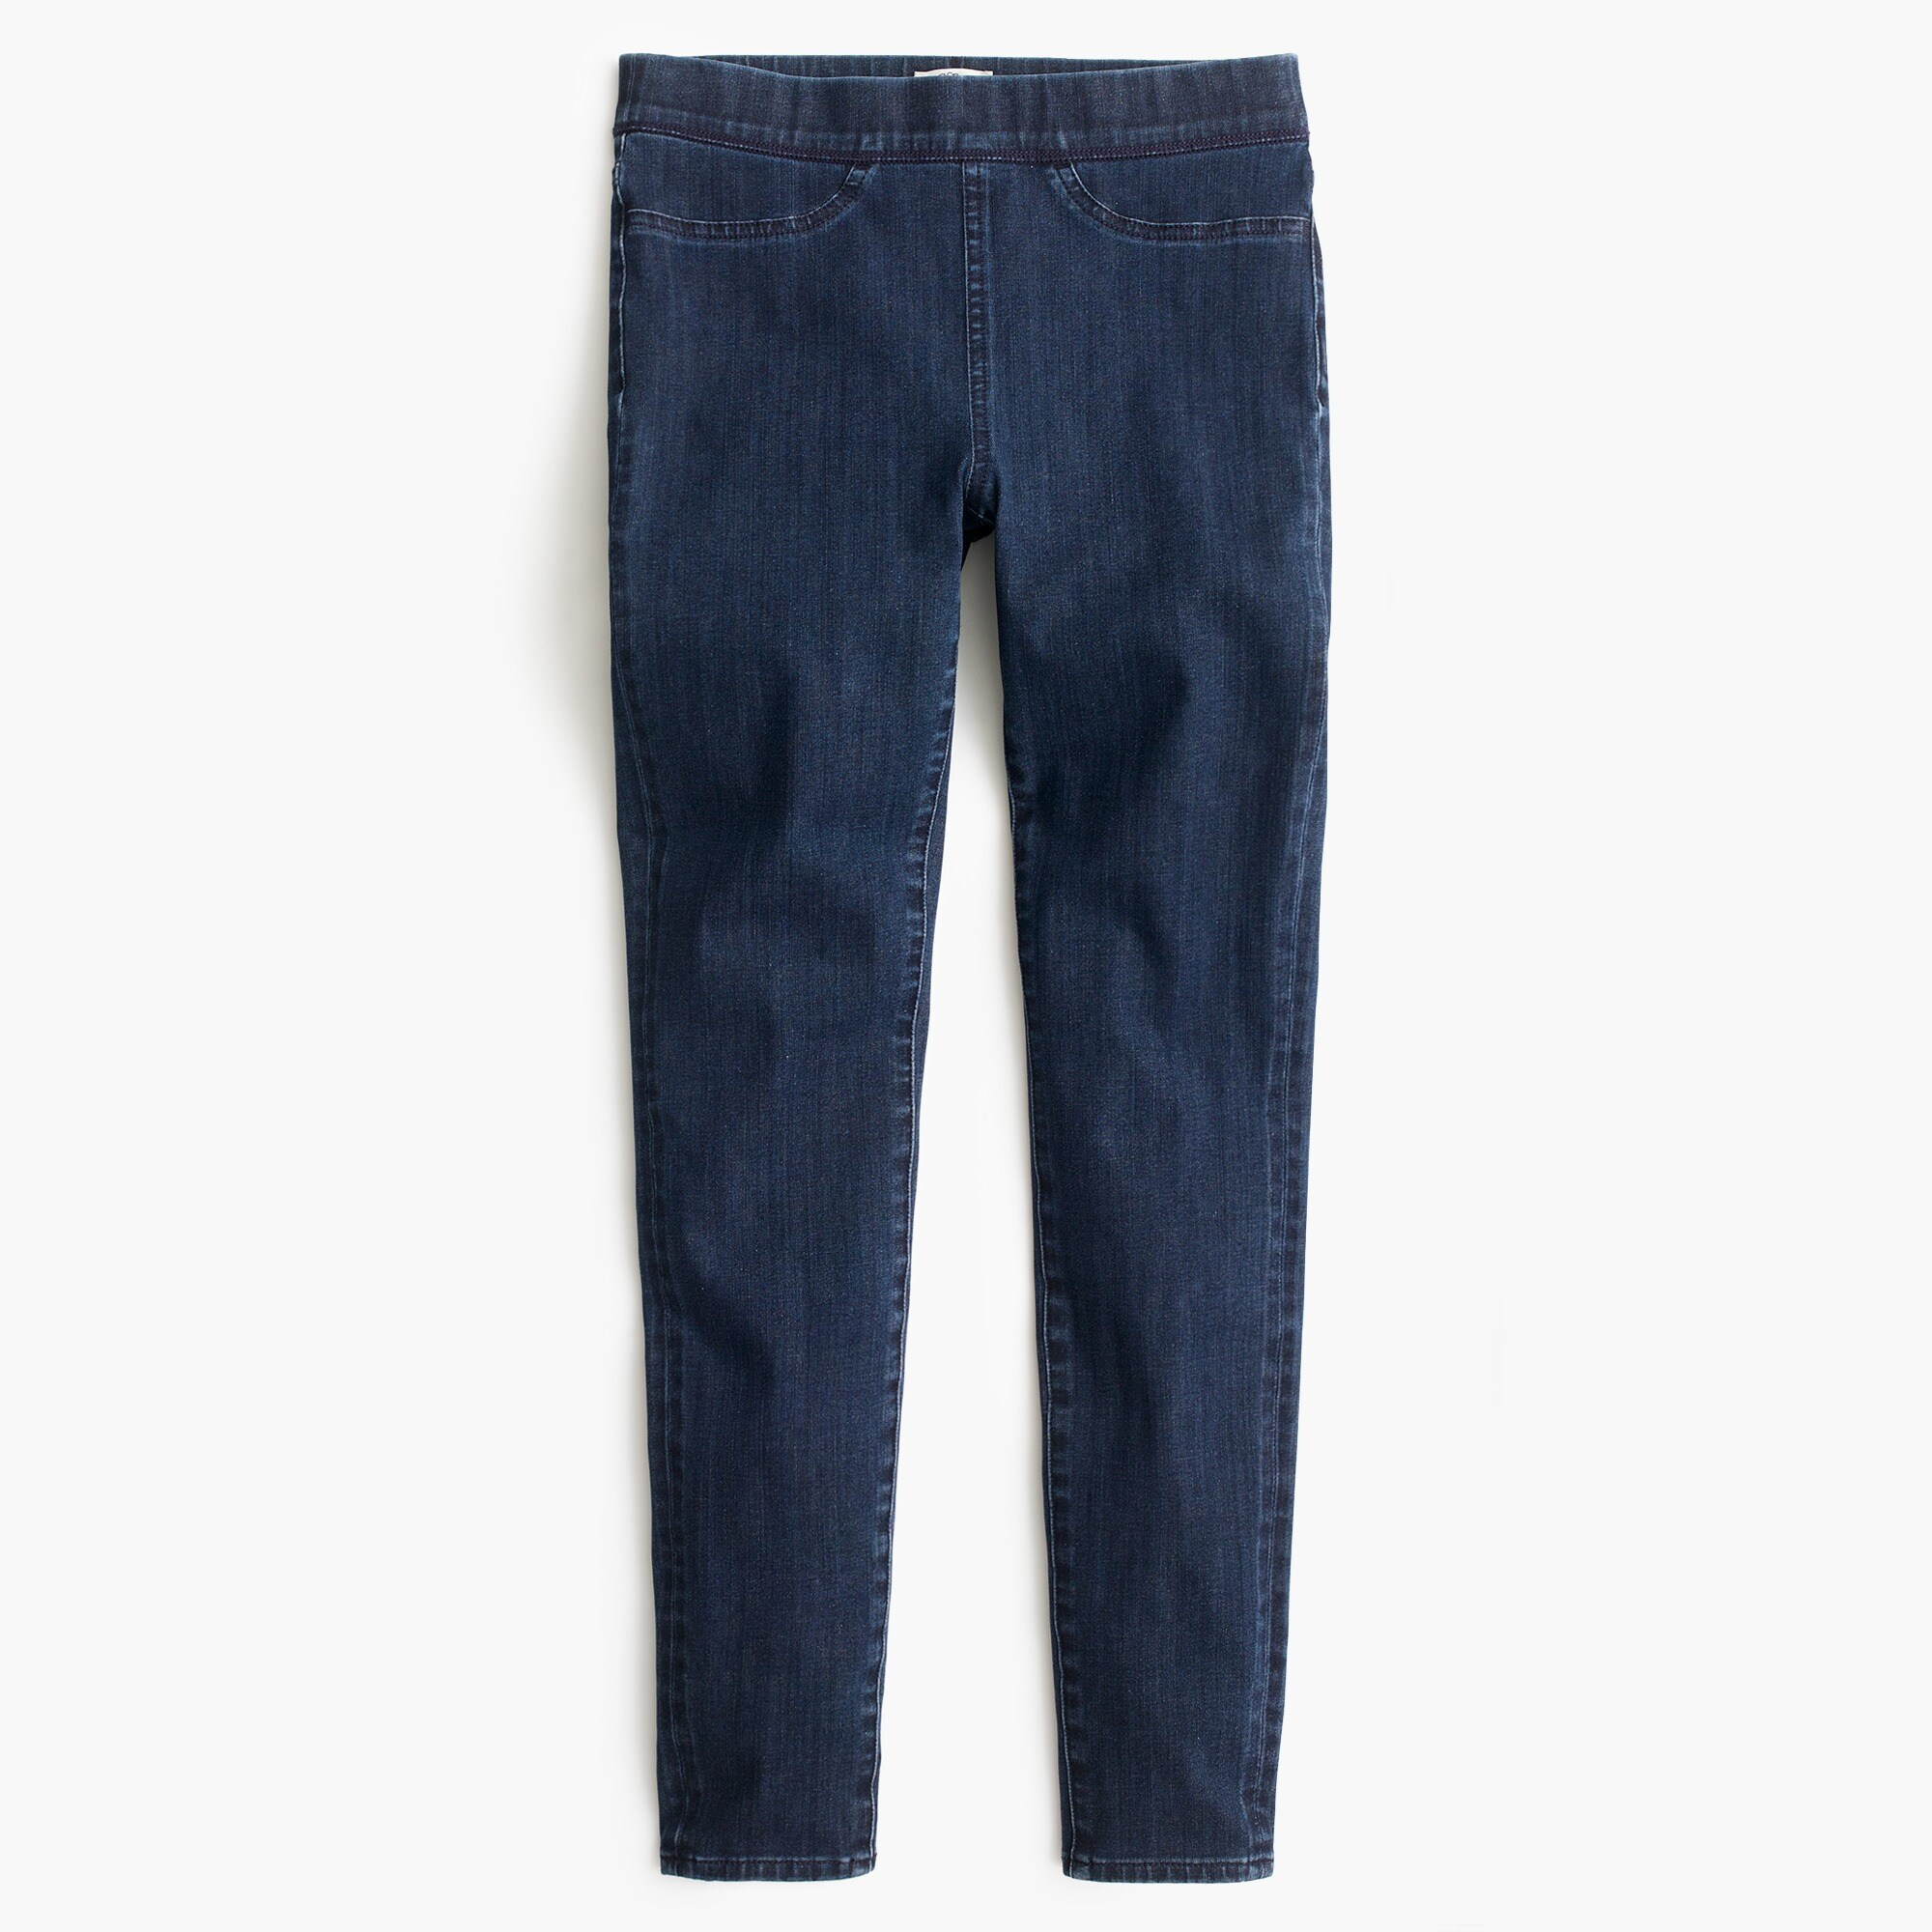 Petite pull-on toothpick jean in indigo